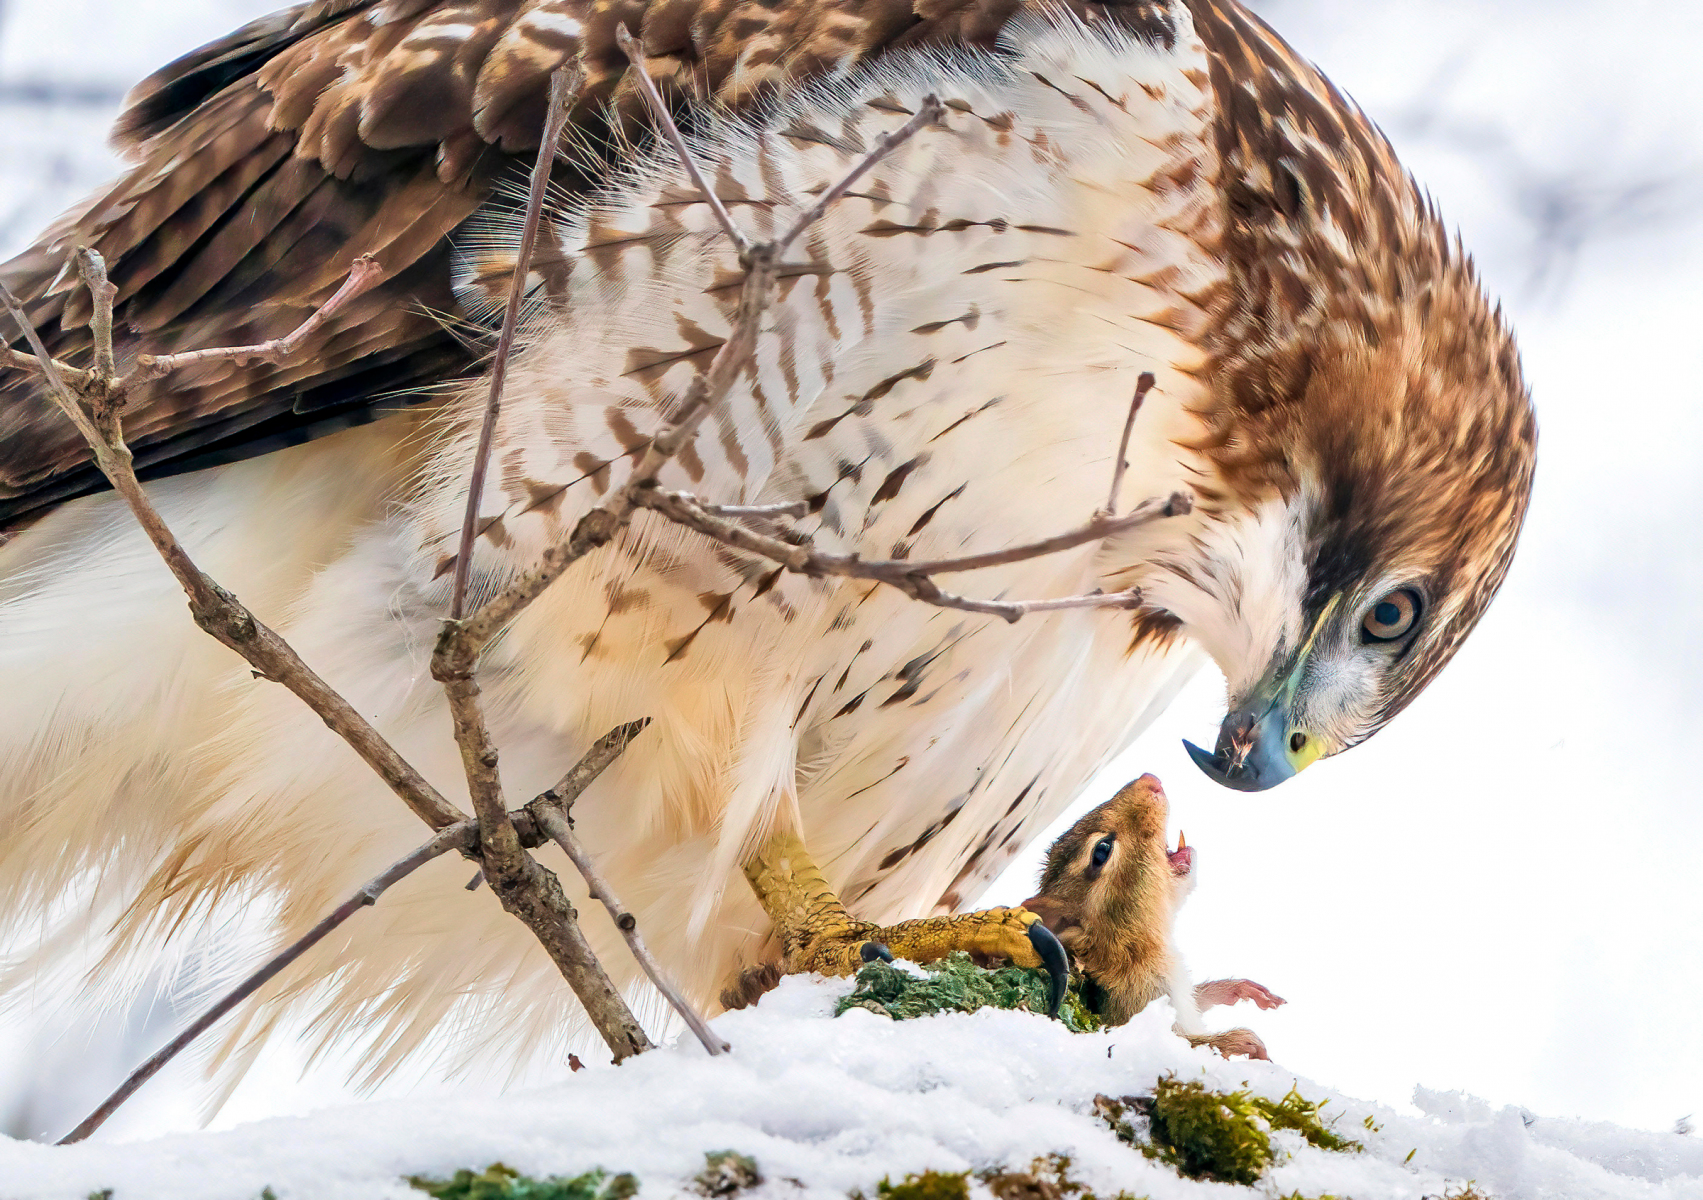 Professional Honorable Mention: Red-tailed Hawk